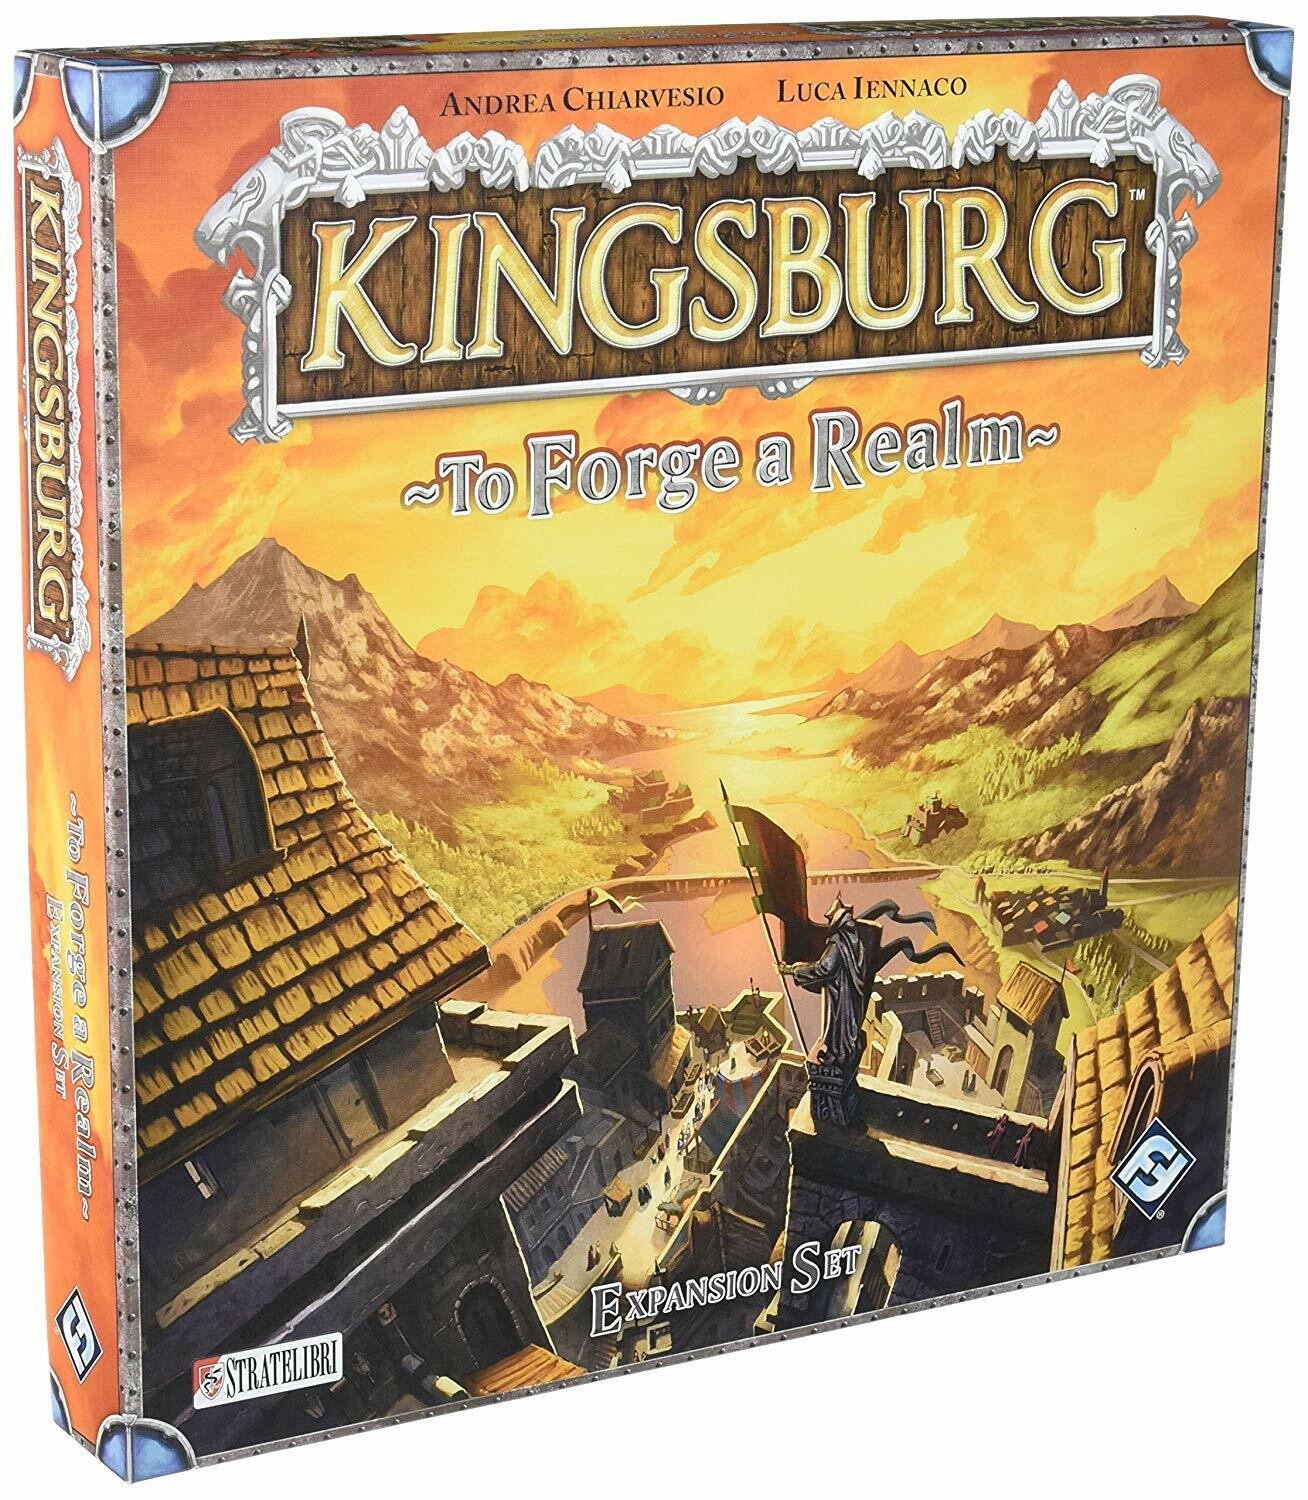 Kingsburg à Forger un royaume Expansion-New & Sealed